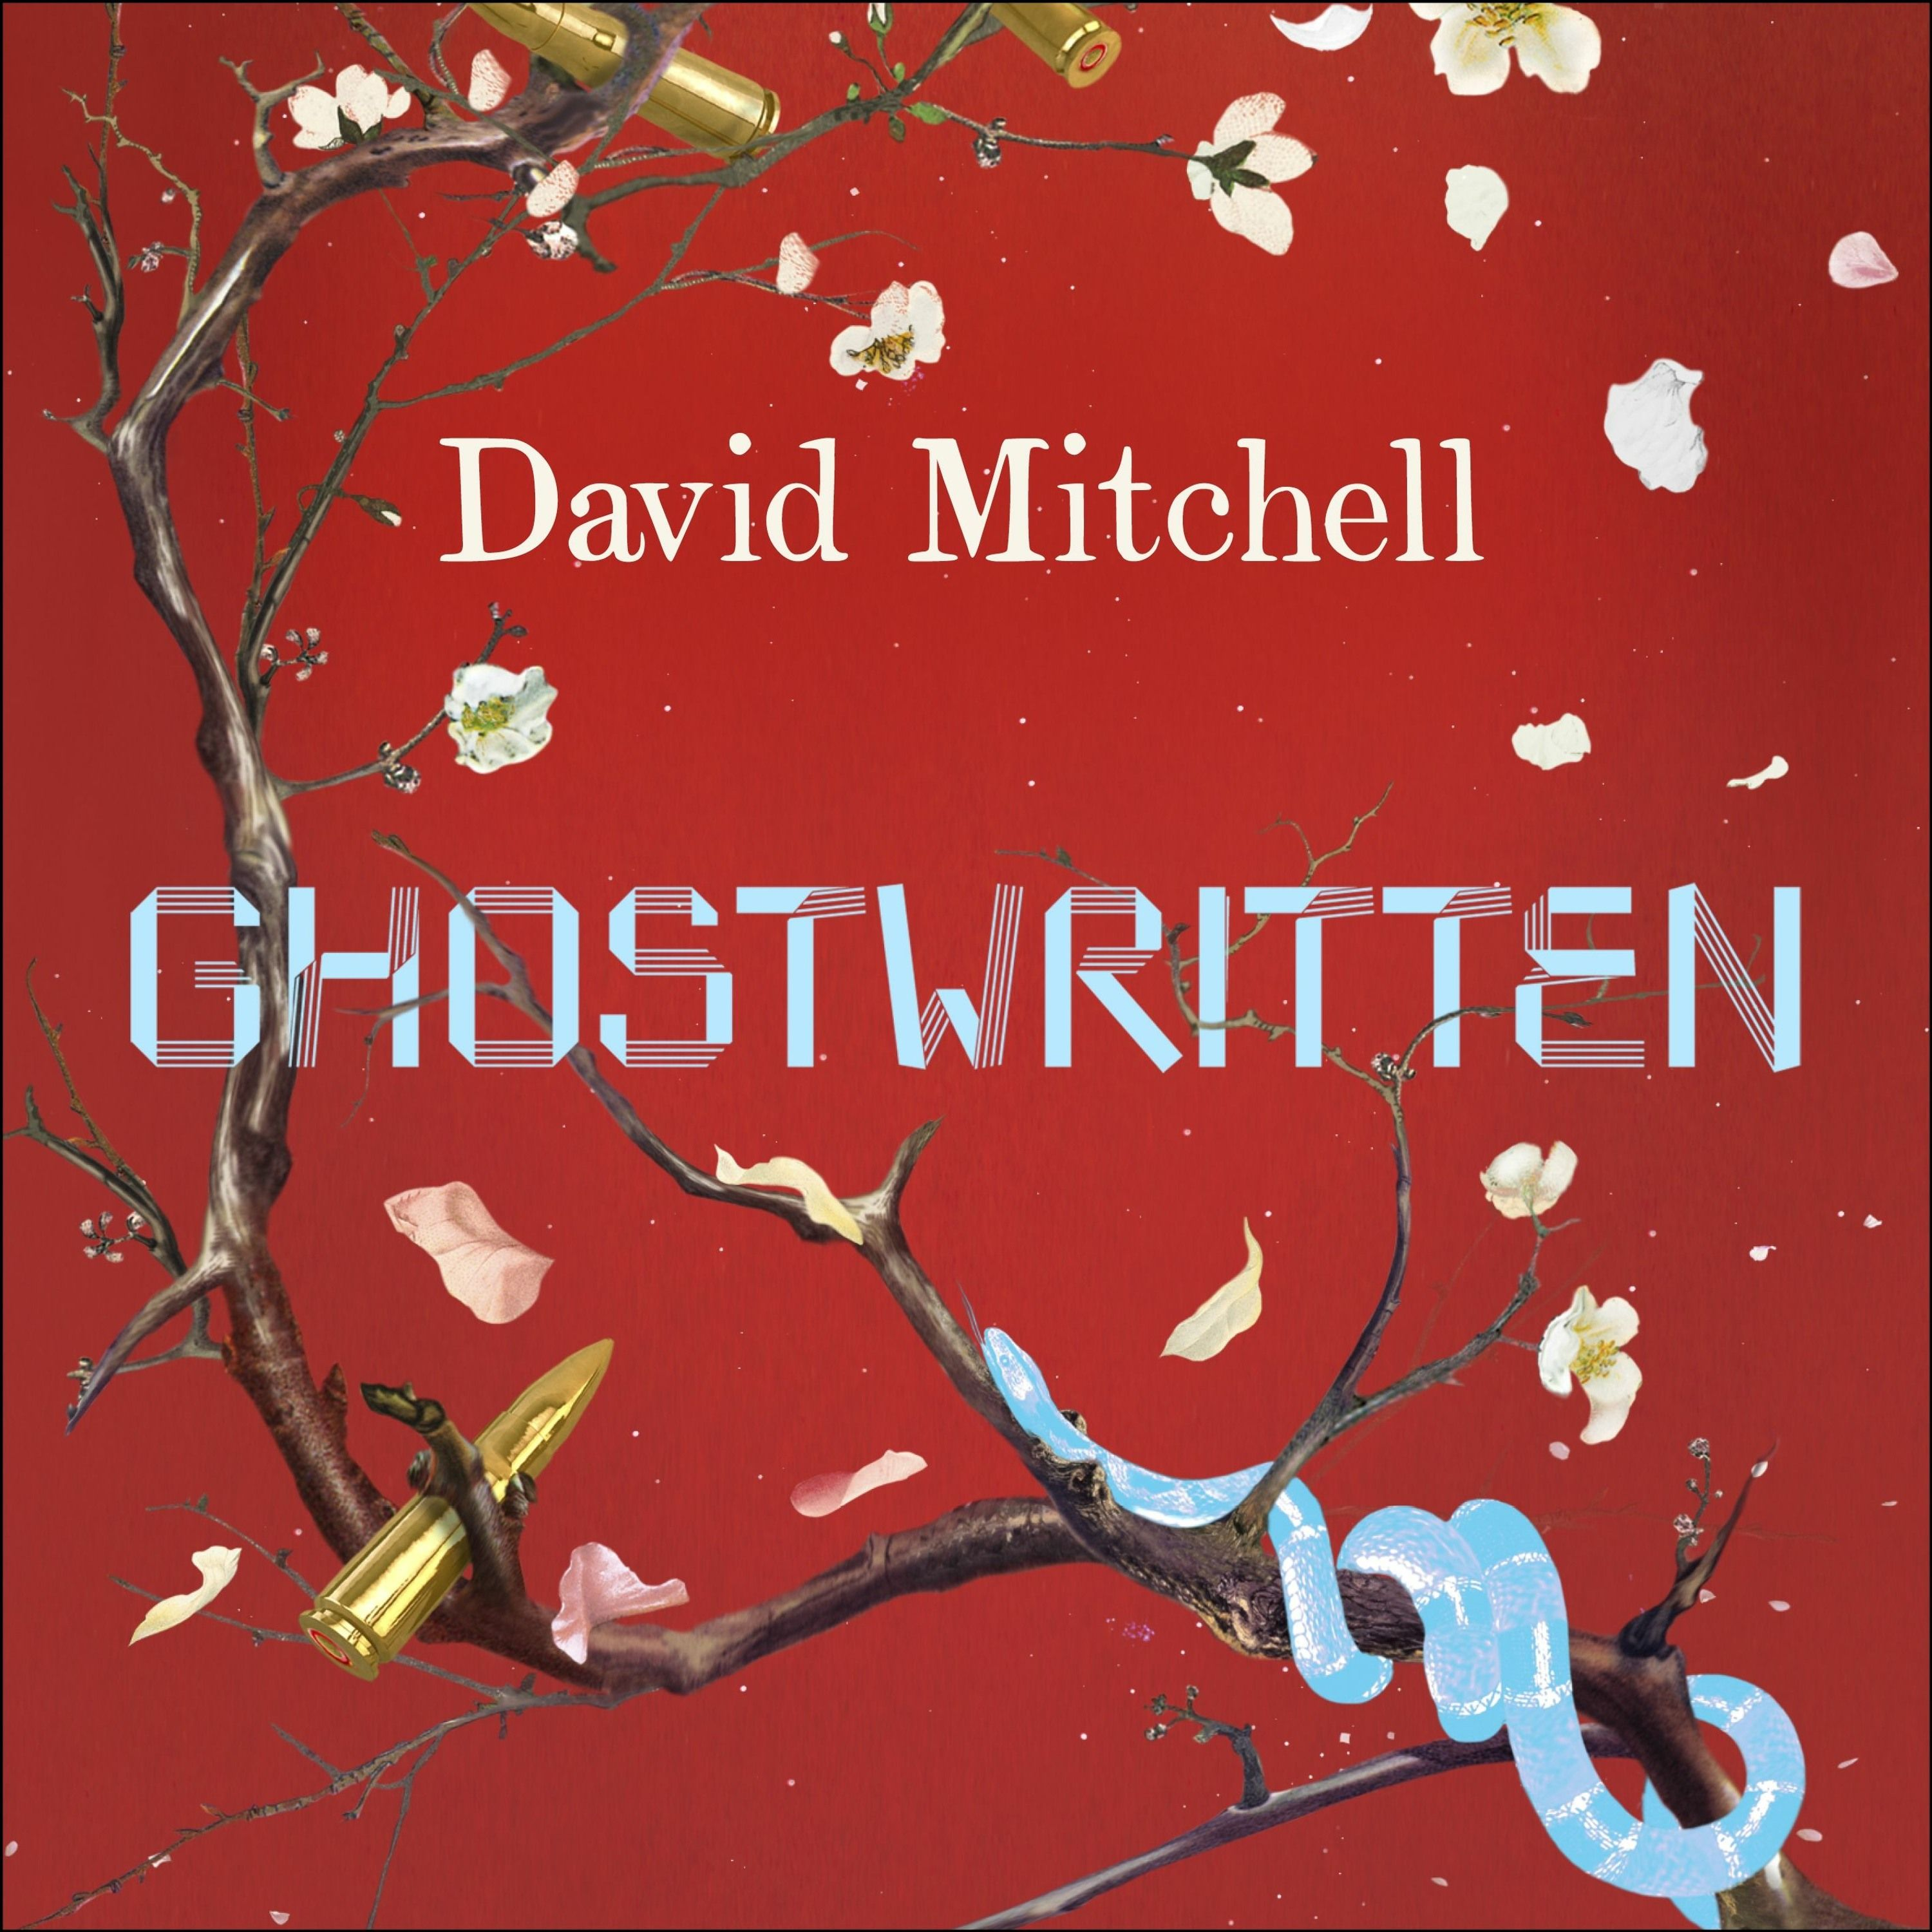 GHOSTWRITTEN by David Mitchell - Audiobook extract